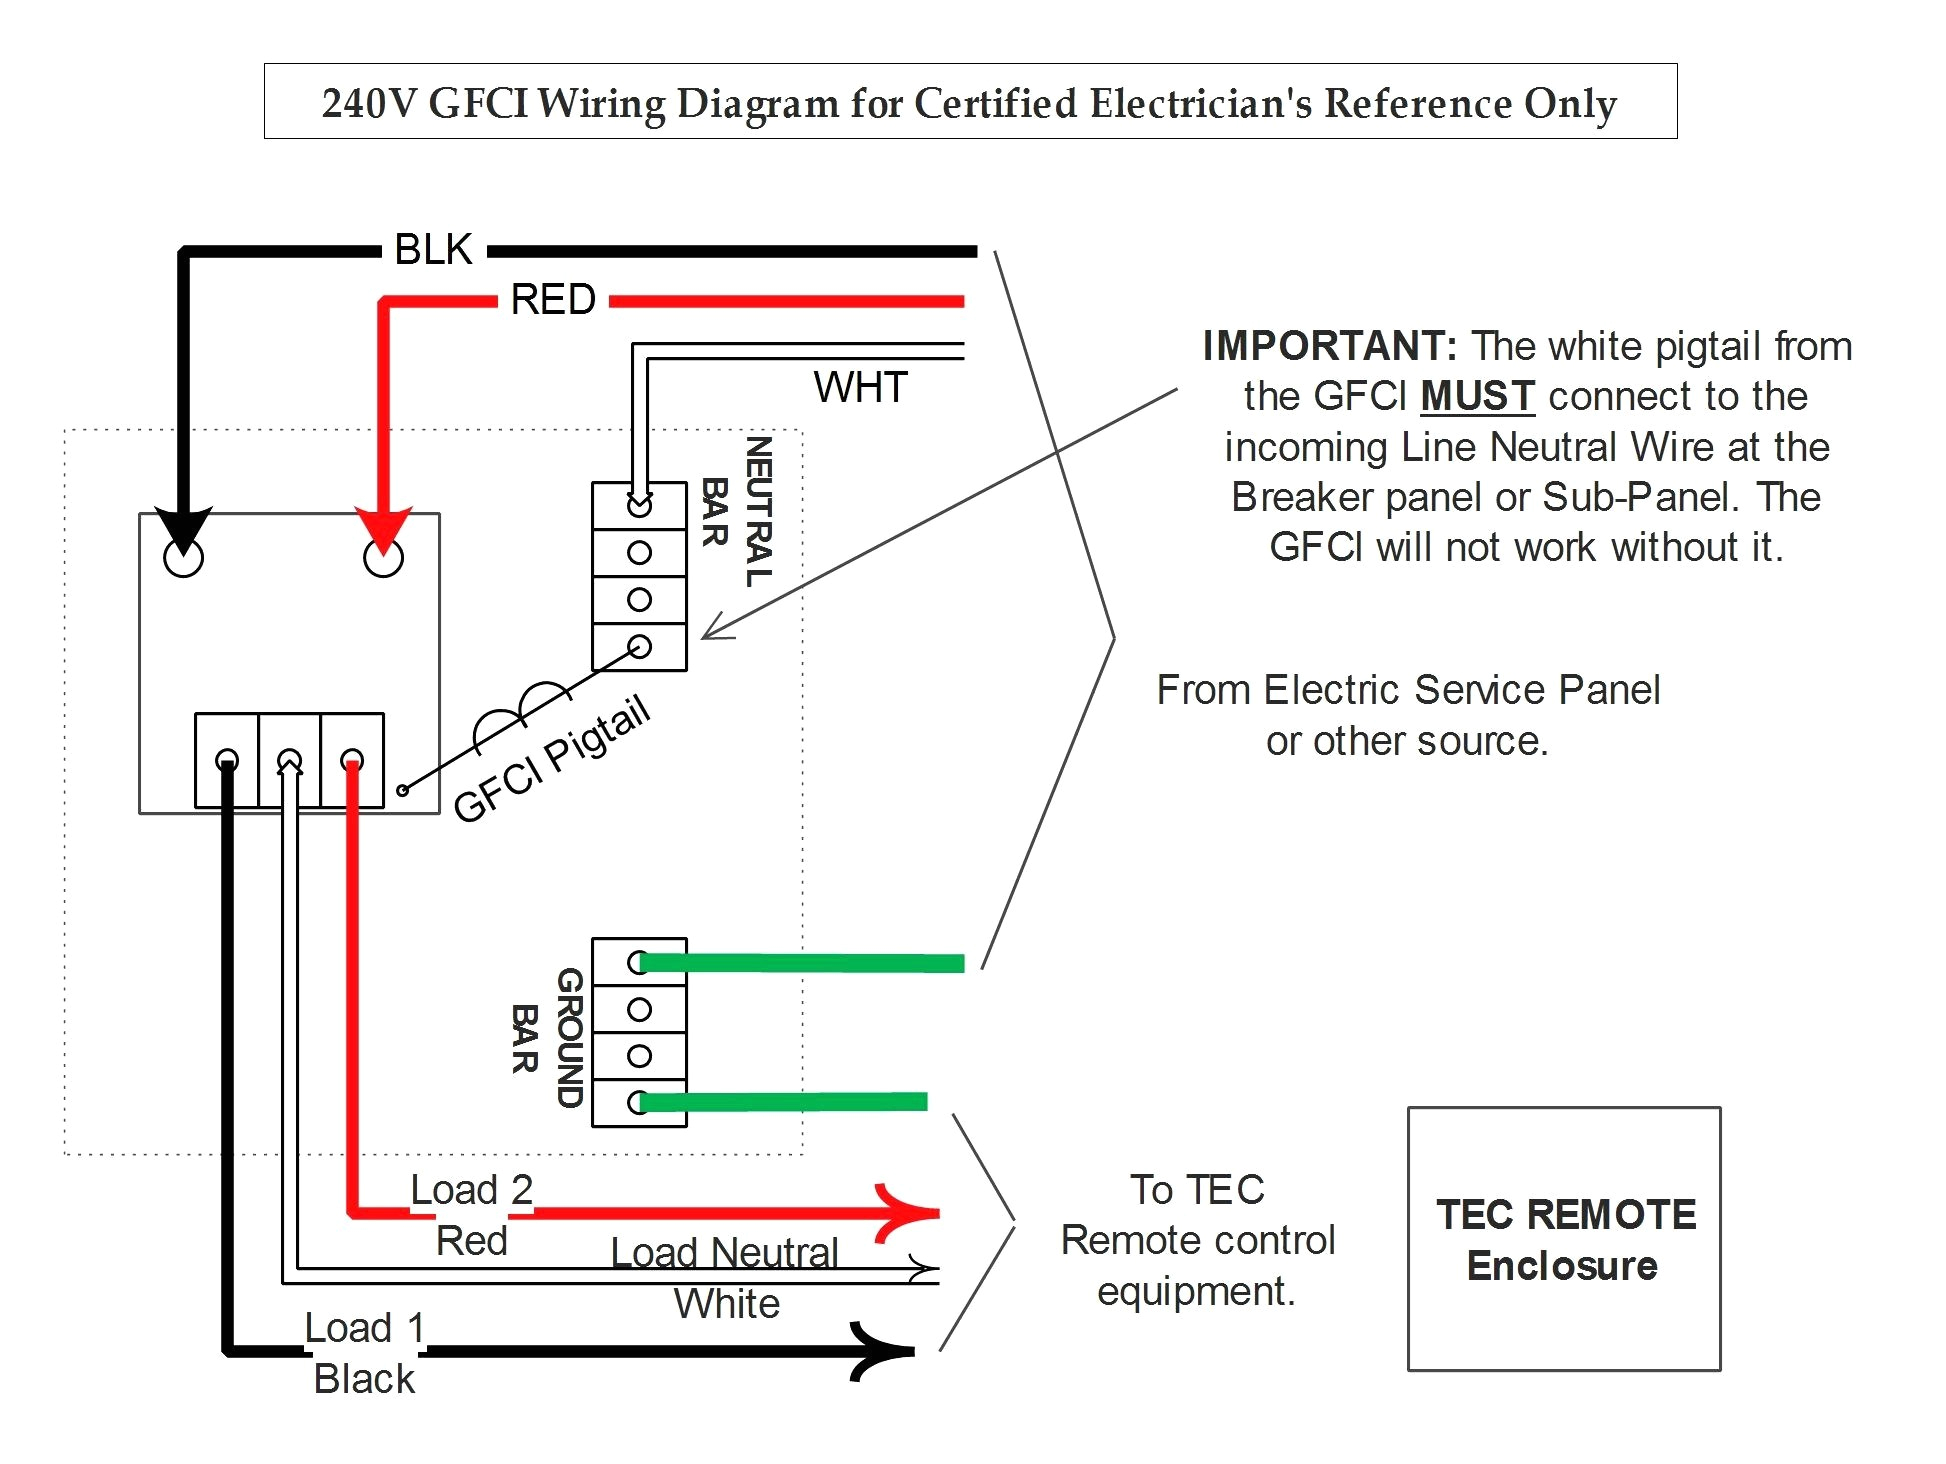 bremas boat lift switch wiring diagram free picture home wiring boat lift switch wiring diagram free picture